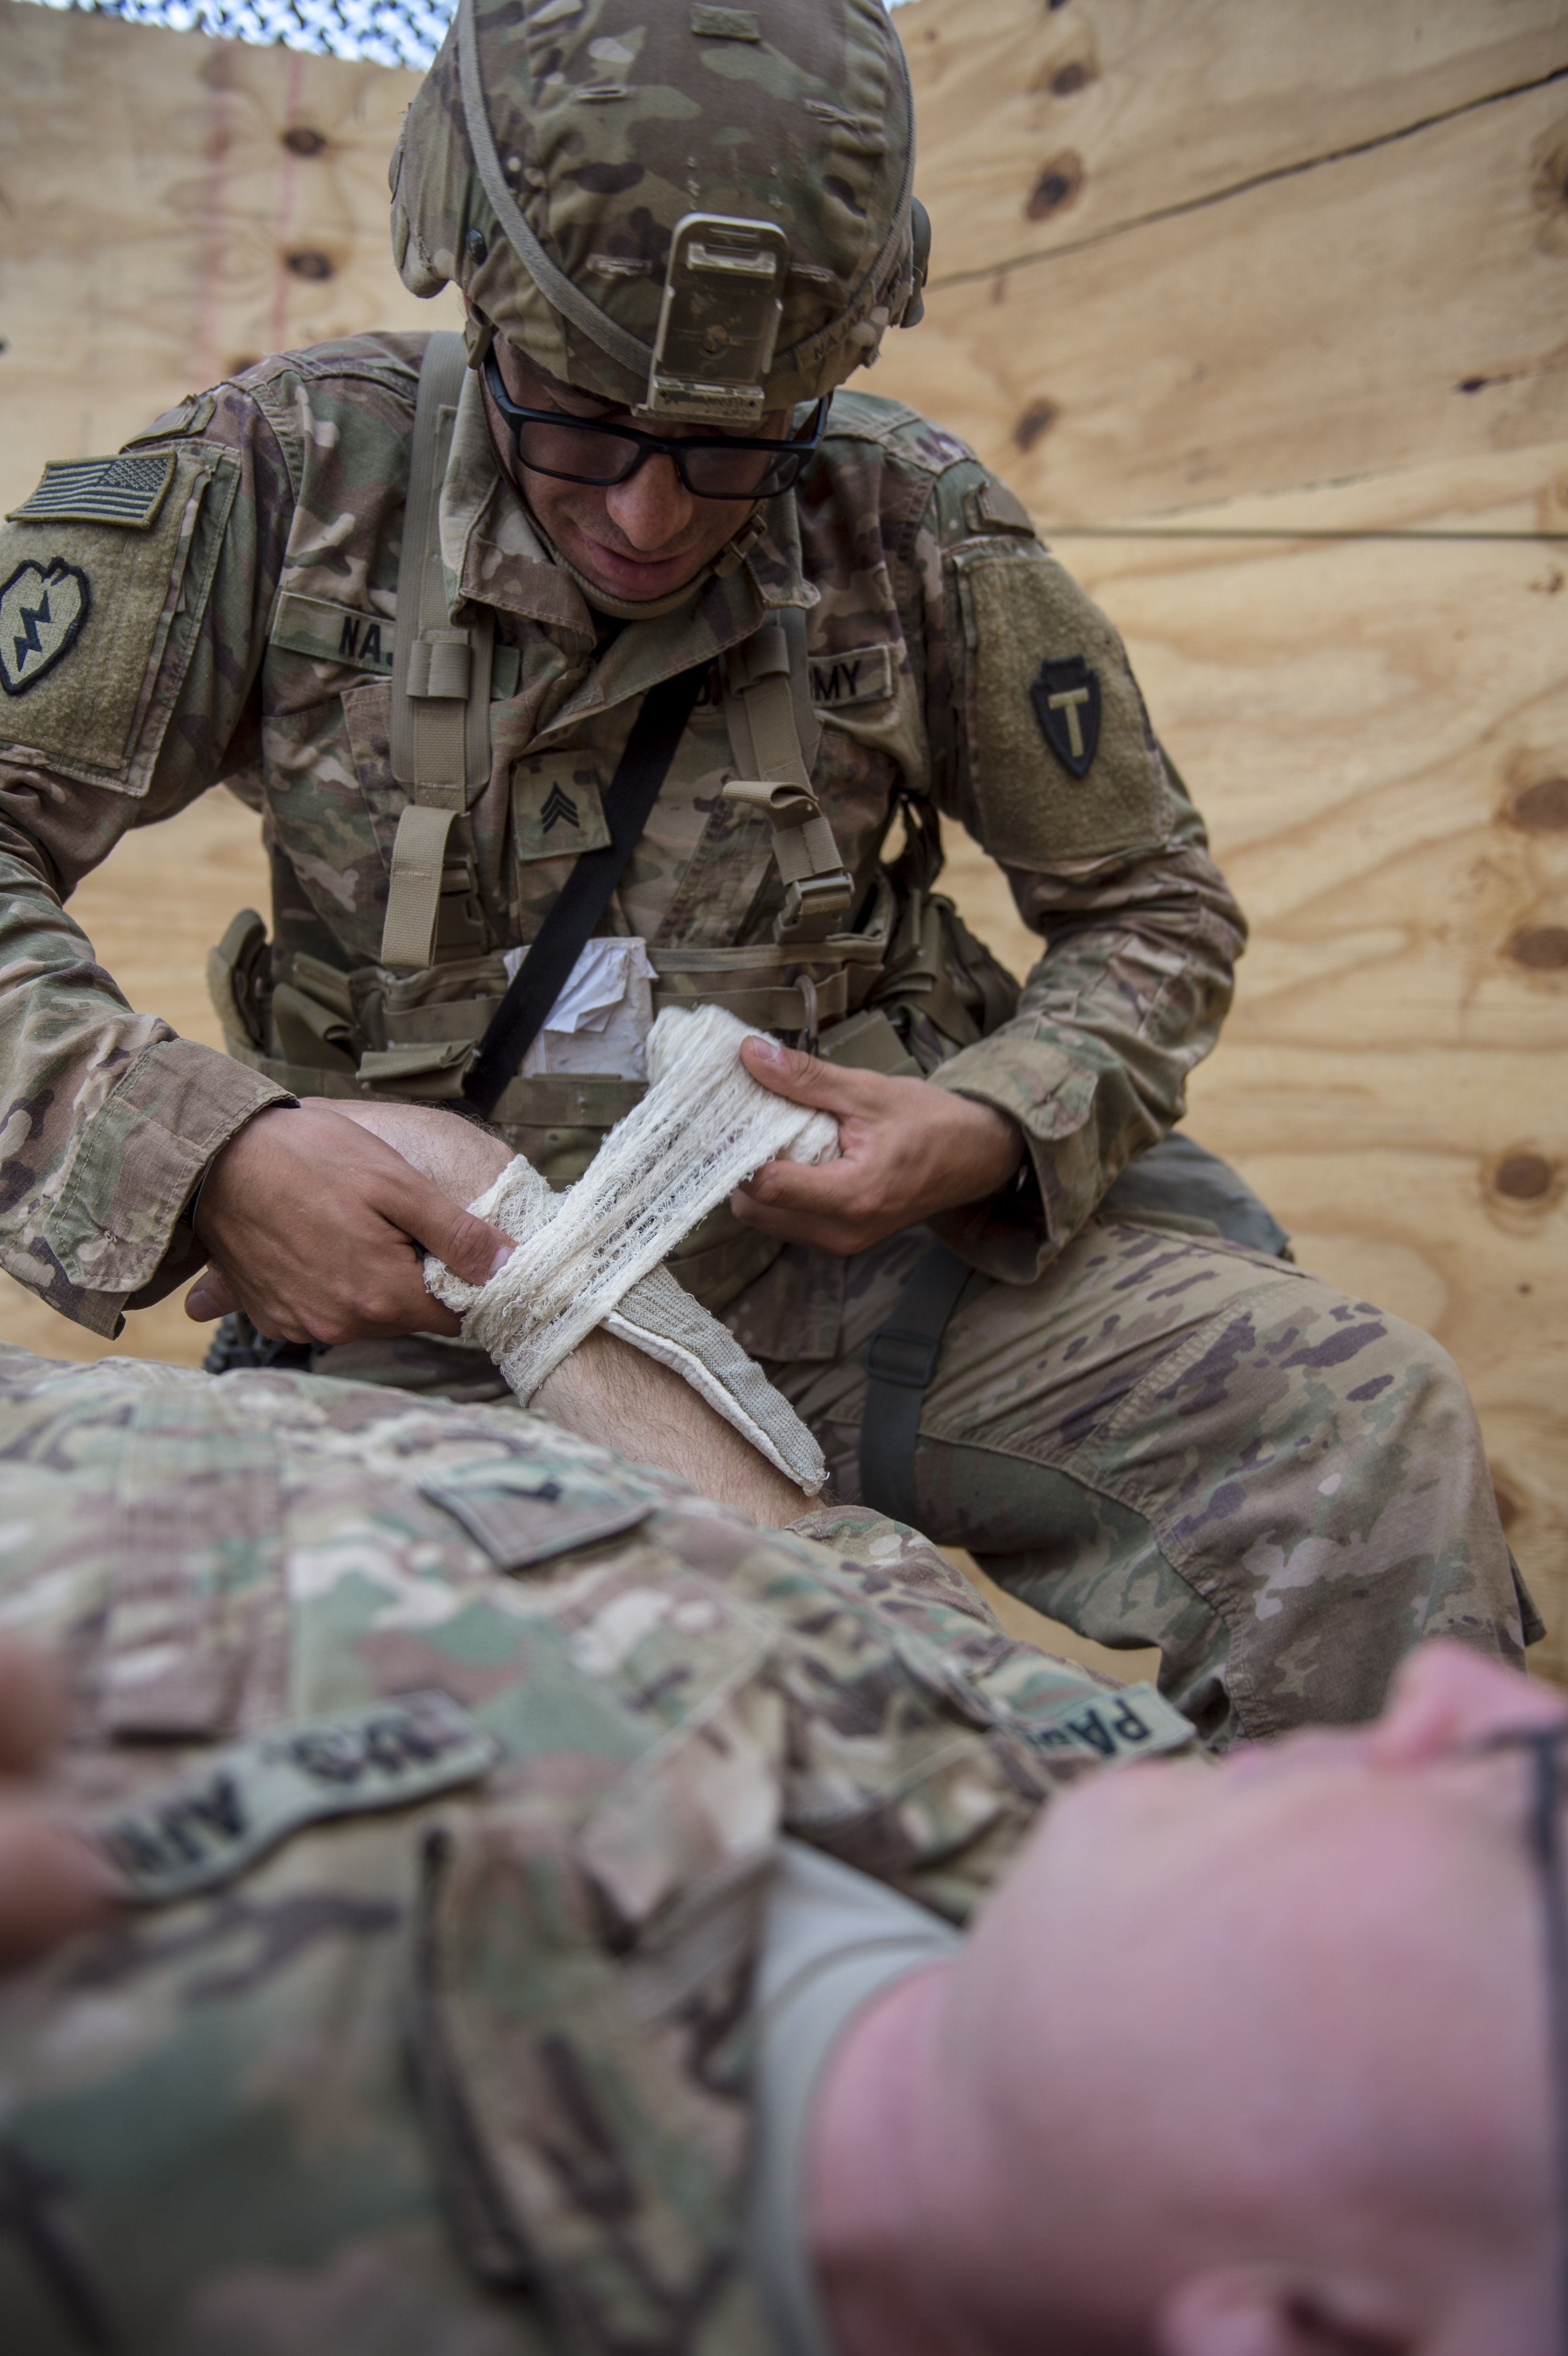 A U.S. Army Soldier assigned to Combined Joint Task Force - Horn of Africa wraps a bandage around a simulated burn wound of a casualty during training for an Expert Infantryman Badge (EIB) evaluation at Camp Lemonnier, Djibouti, Jan. 24, 2018. The EIB is a coveted special skills badge that requires infantry Soldiers to pass a five-day evaluation that consists of an Army Physical Fitness Test, day and night land navigation, a 12-mile forced march, and 30 individual tasks covering weapons, medical, and security patrol skills. In an April 2016 EIB iteration at Camp Lemonnier, only 15 percent of candidates earned the badge. (U.S. Air Force photo by Staff Sgt. Timothy Moore)